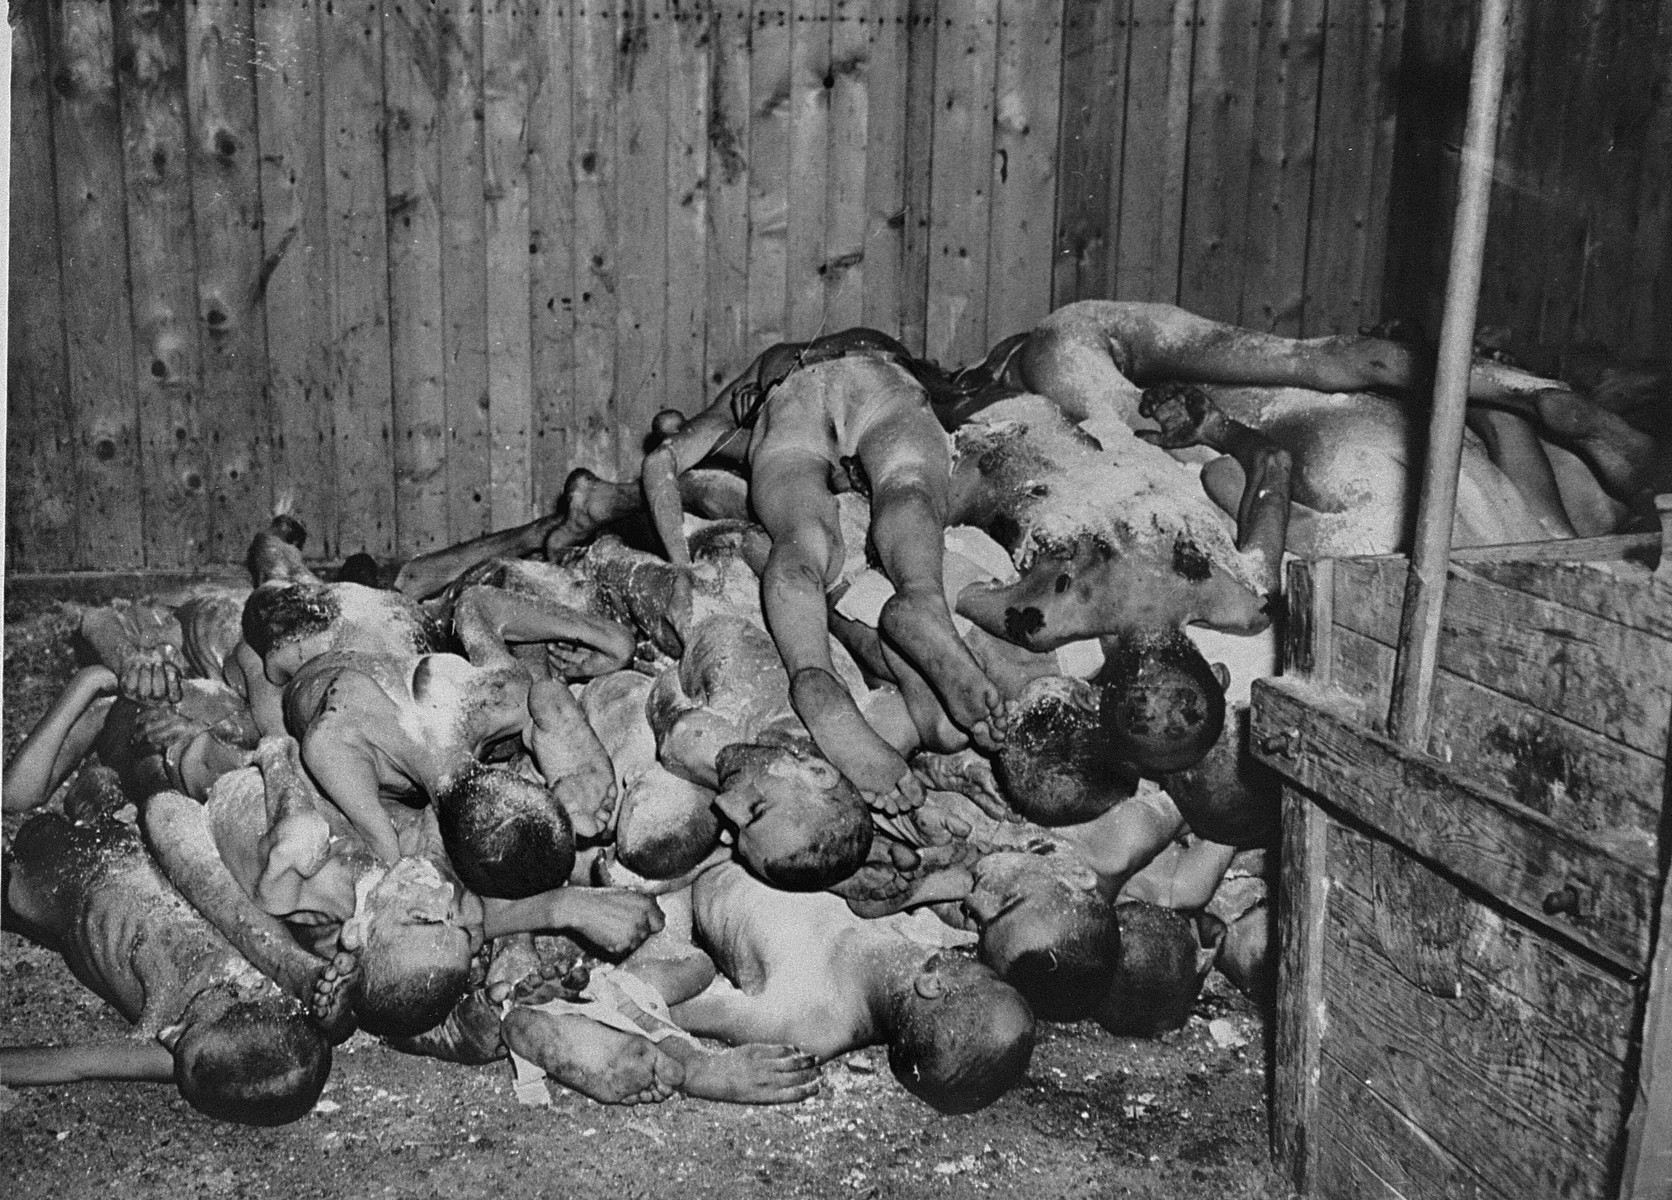 The bodies of prisoners lie stacked in a shed in the Ohrdruf concentration camp.